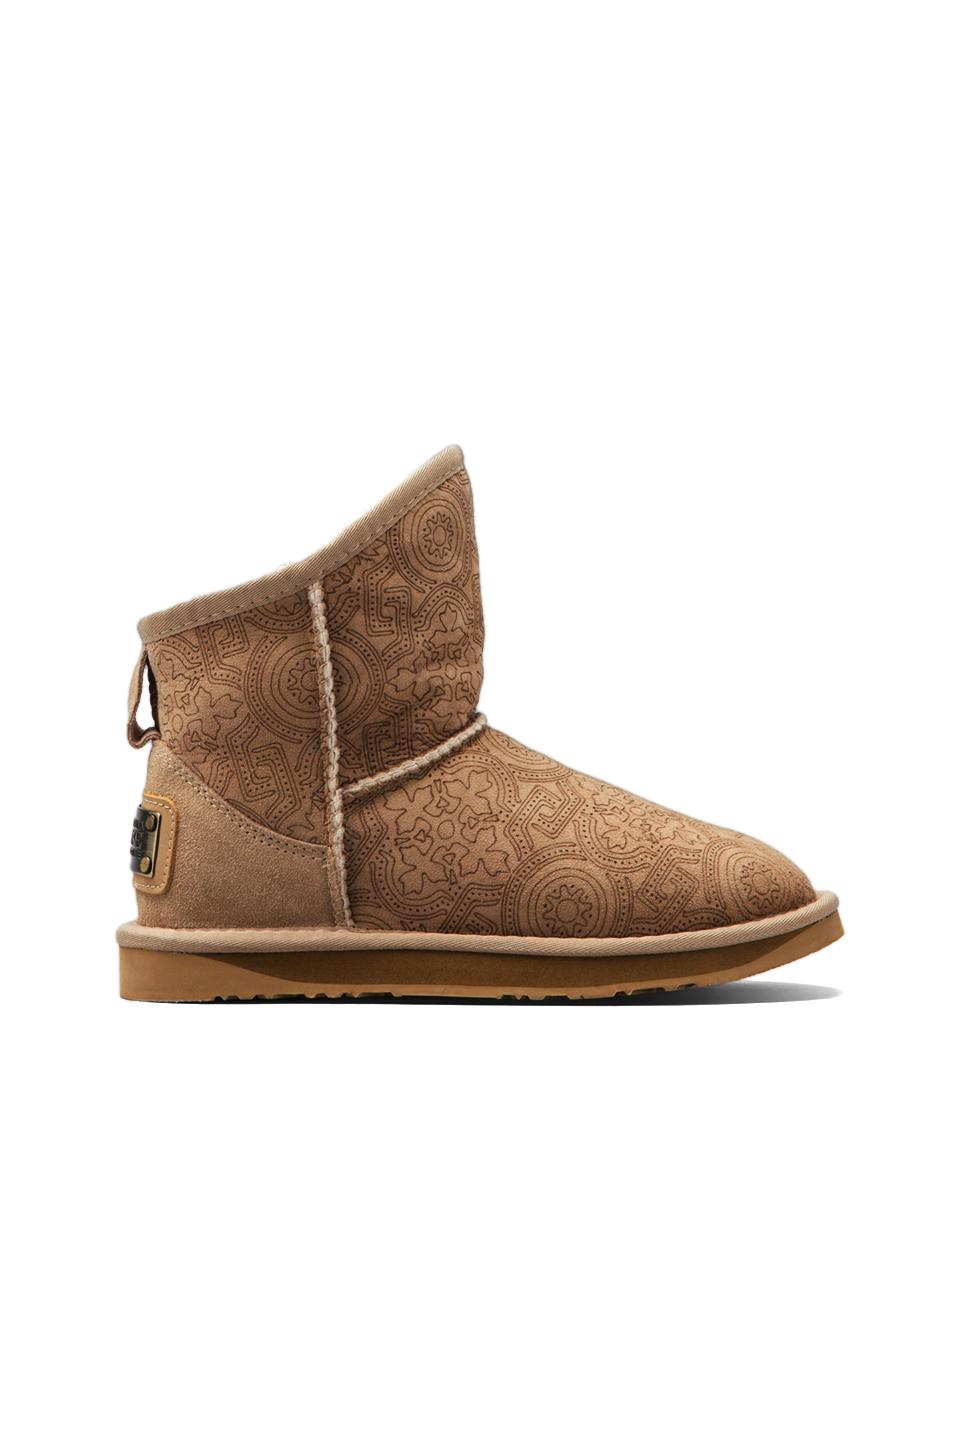 Australia Luxe Collective Cosy X-Short Boot with Sheep Shearling in Laser Sand